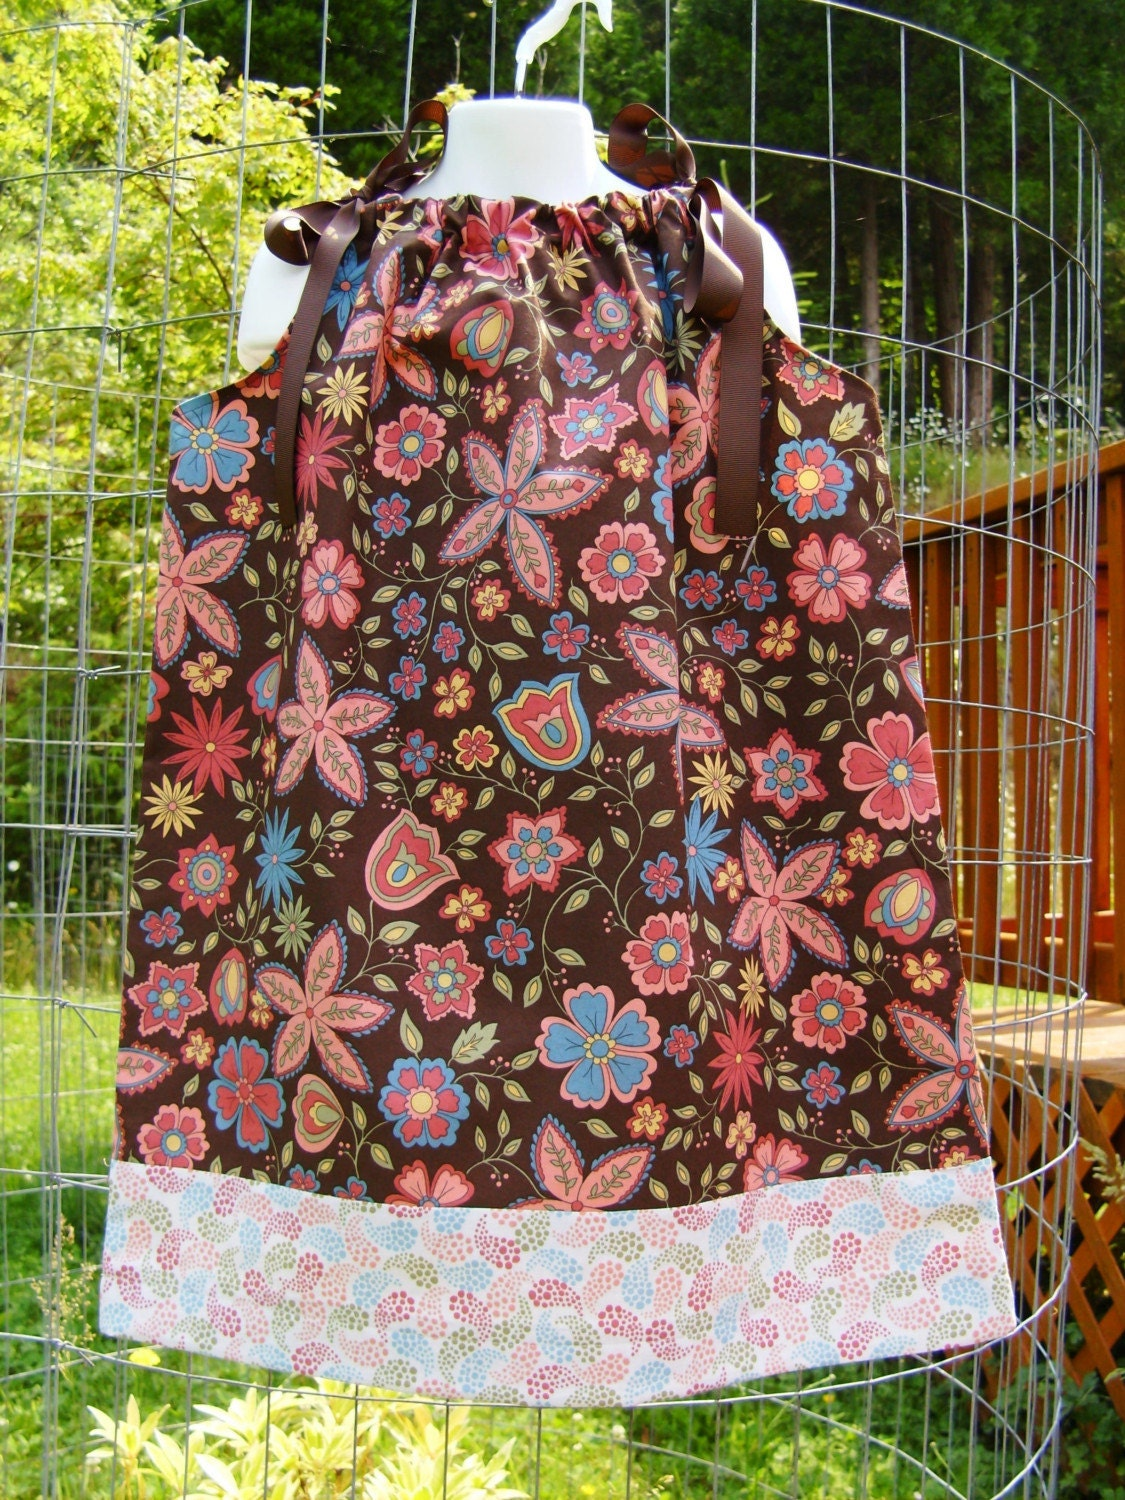 Chocolate Floral Garden with Paisley Border Girls Pillowcase Dress 12 mos 18 mos 2T 3T 4 5 6